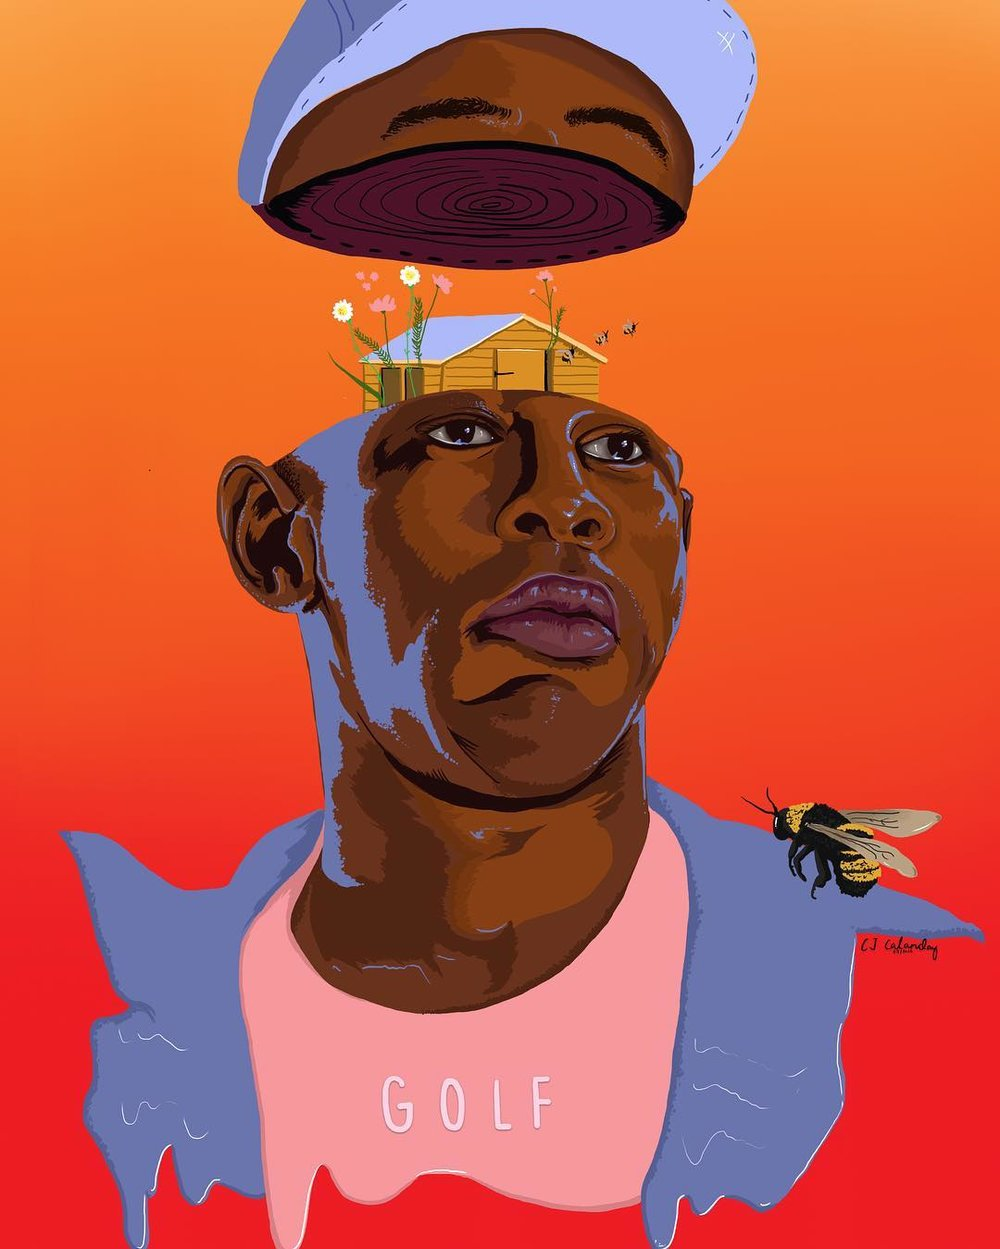 chaariz filipina london artist digital doodler - tyler the creator.jpg